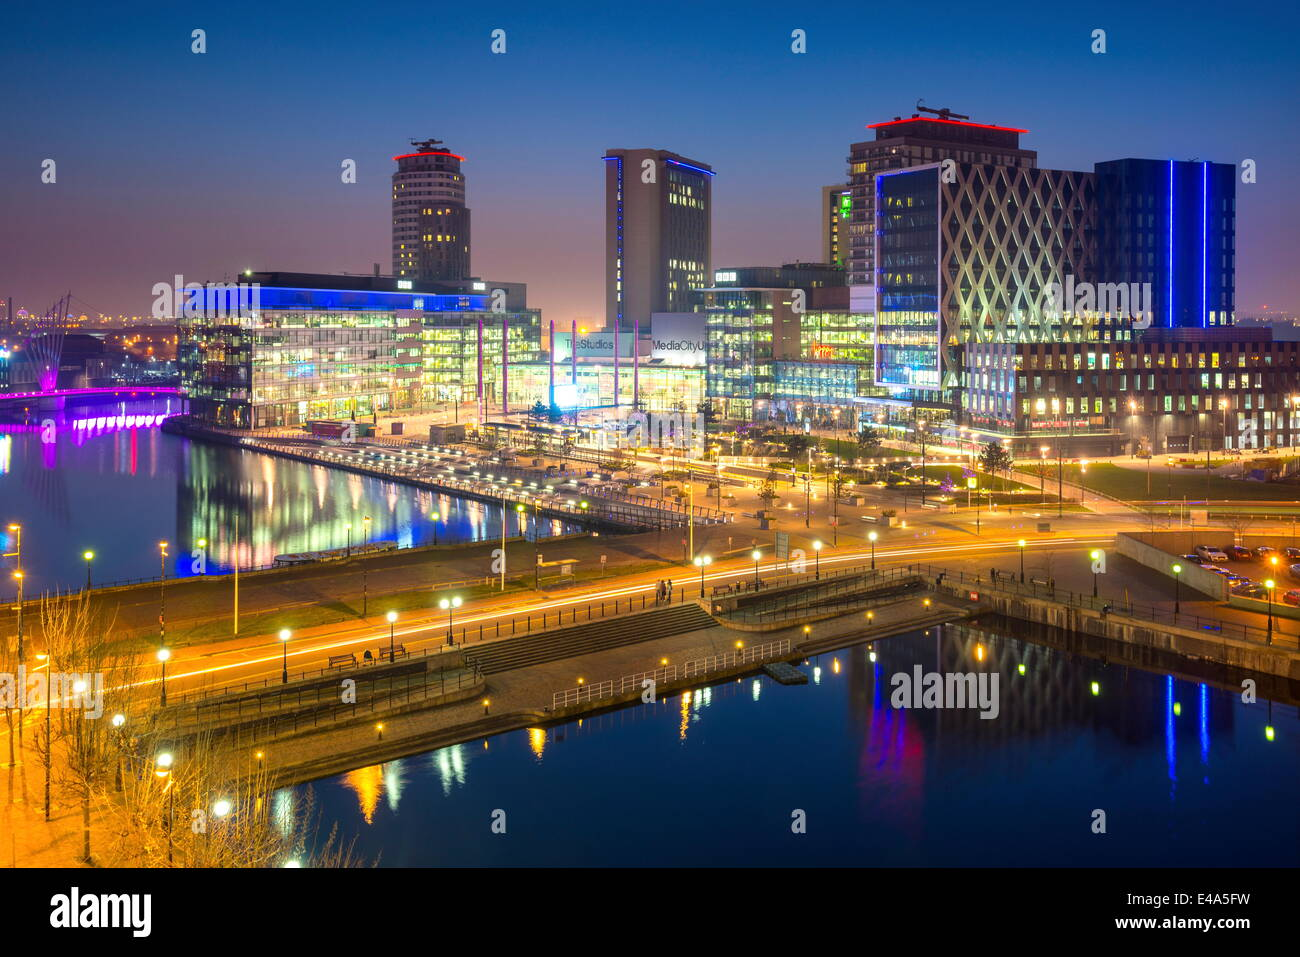 Elevated view of the modern MediaCity UK complex at Salford Quays in Manchester, England, United Kingdom, Europe Stock Photo